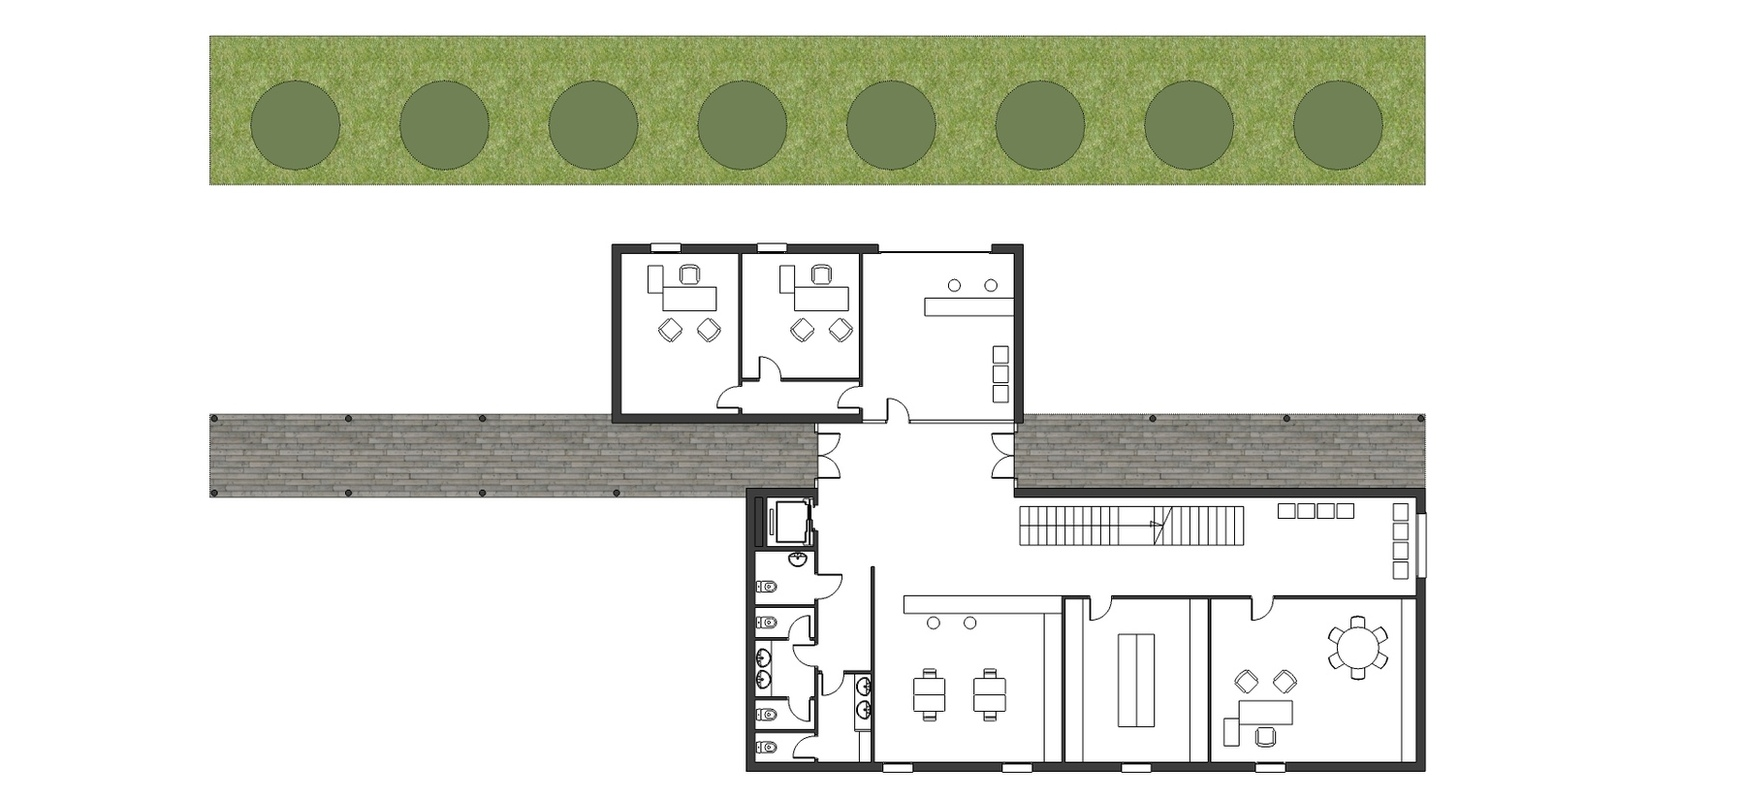 arqestudiBOMON - planta baja / ground floor